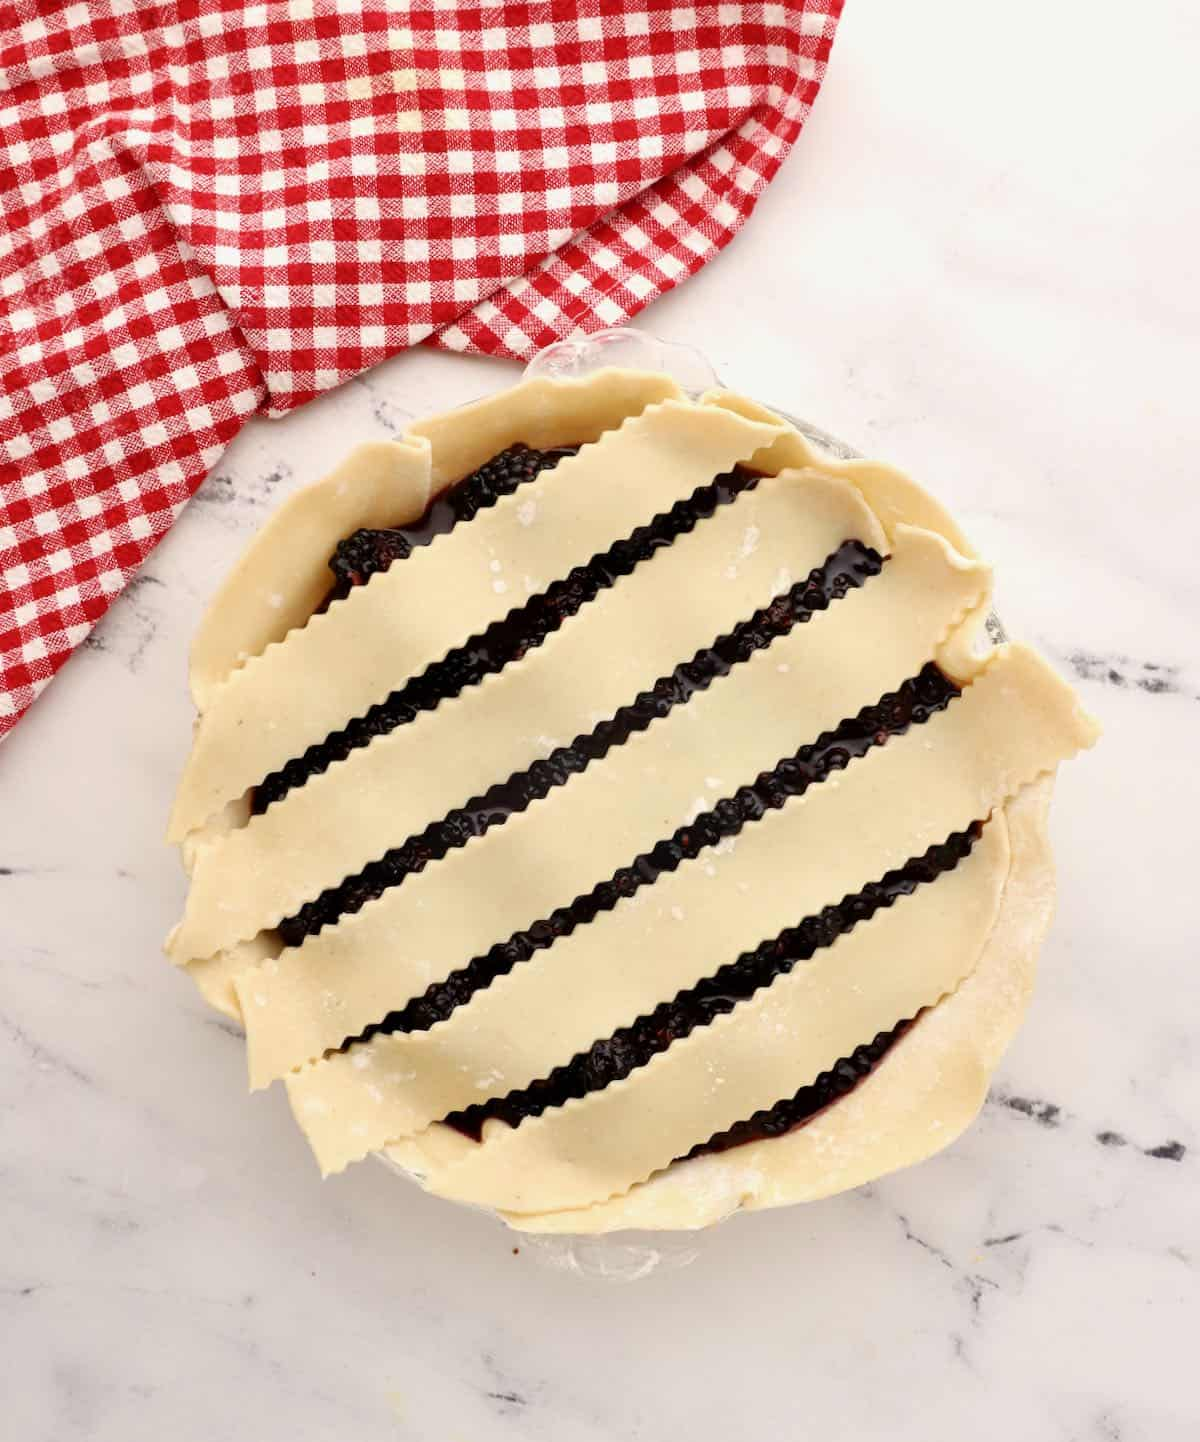 Laying out a lattice crust on a pie.